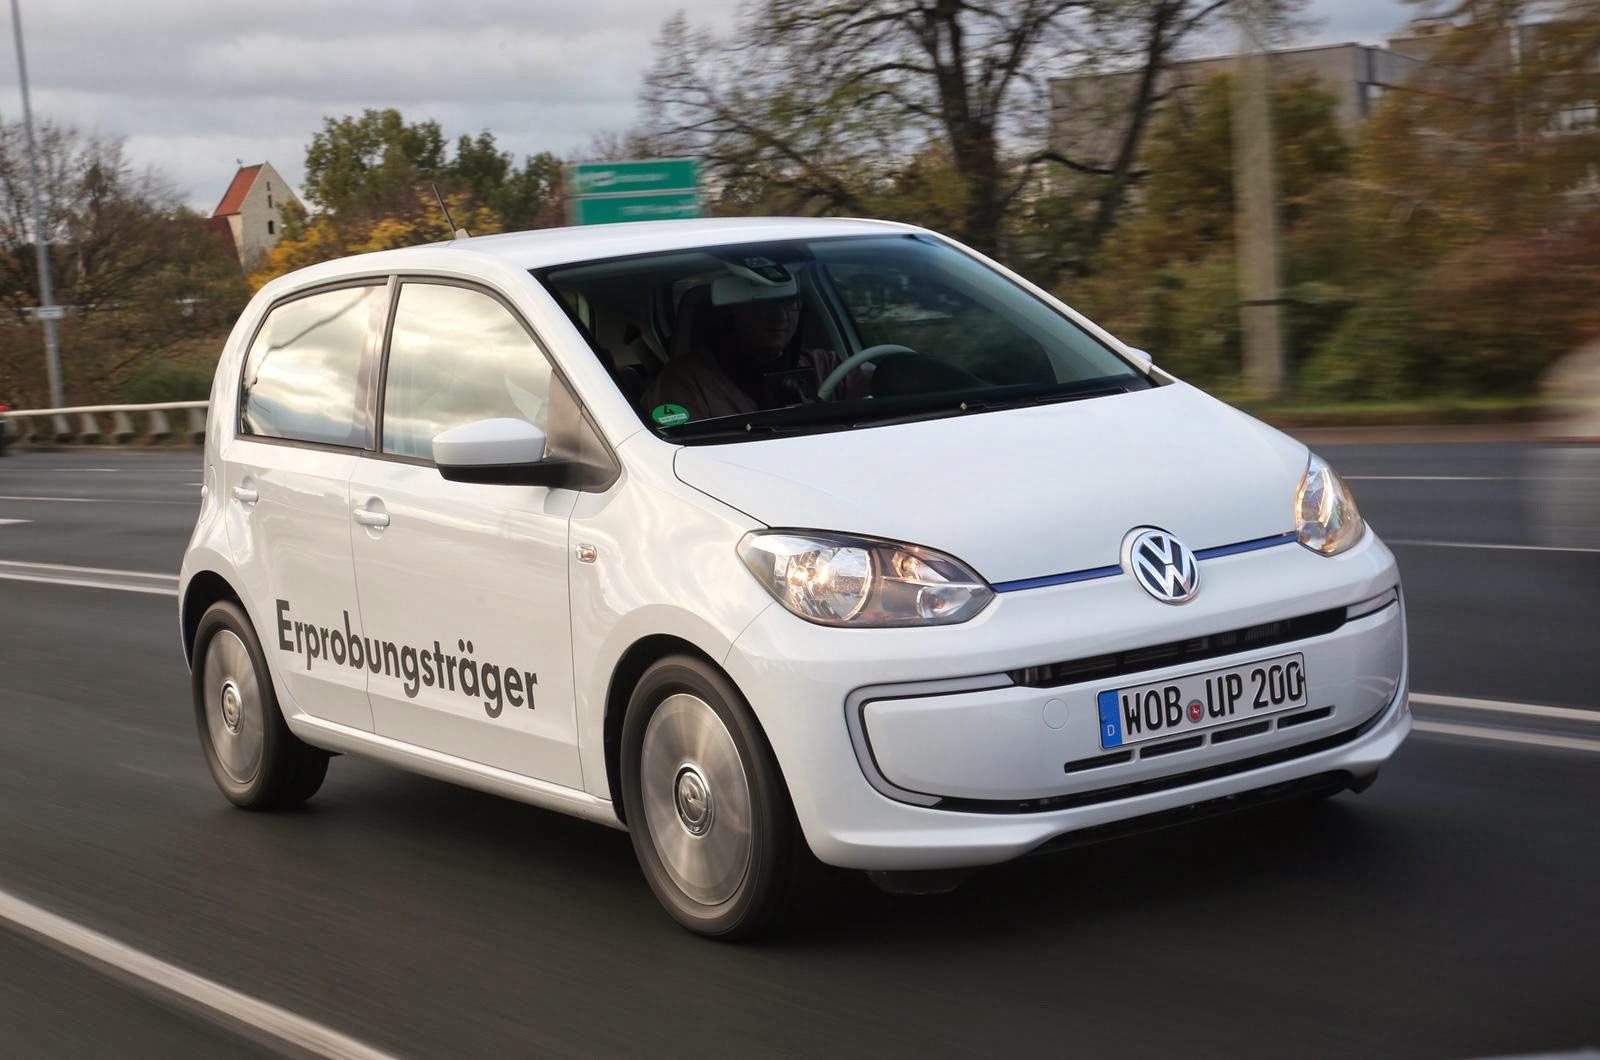 Volkswagen Tdi Mpg Vw Shows 214 Mpg Twin Up Xl1 Based Hybrid Concept Tokyo